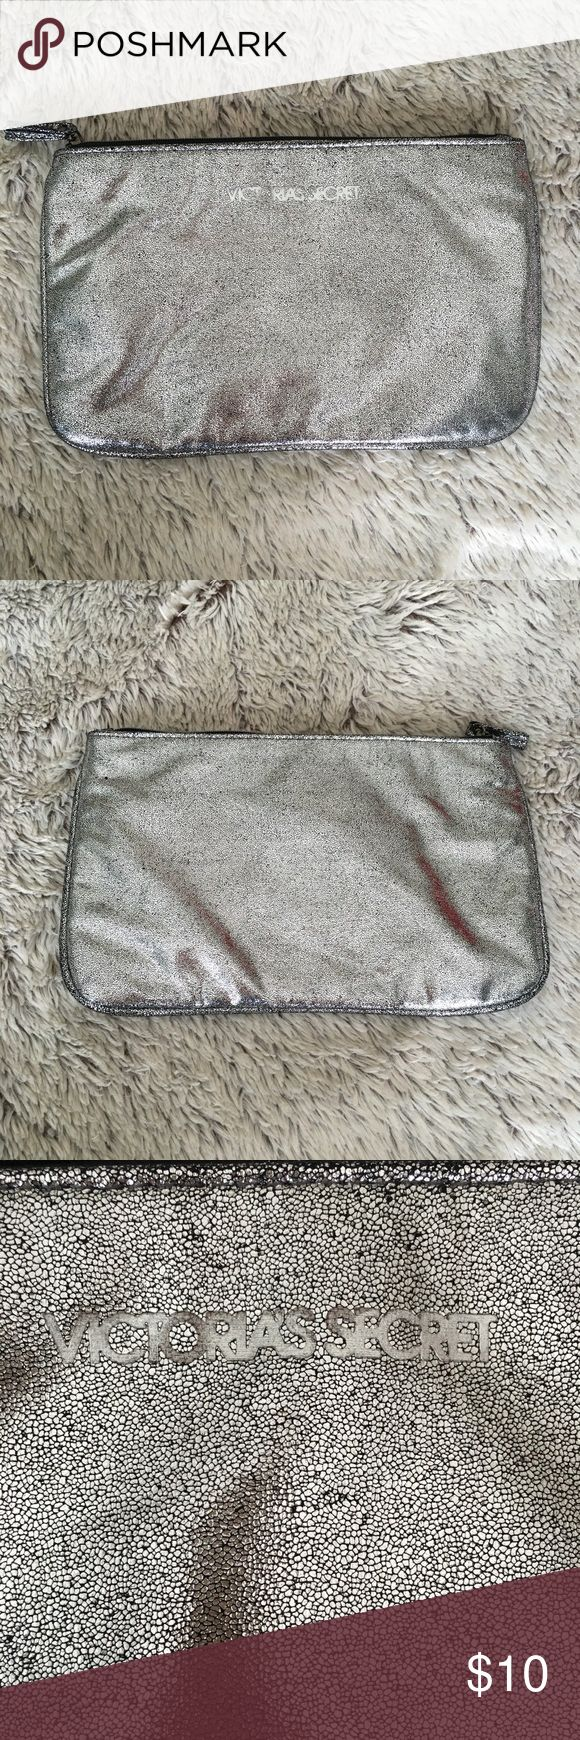 Victoria's Secret Large Cosmetic Bag❤️New Never used Victoria's Secret make up bag in crackled silver. Large enough to be used as a clutch too. 11x7 inches. Black interior. Victoria's Secret Bags Cosmetic Bags & Cases